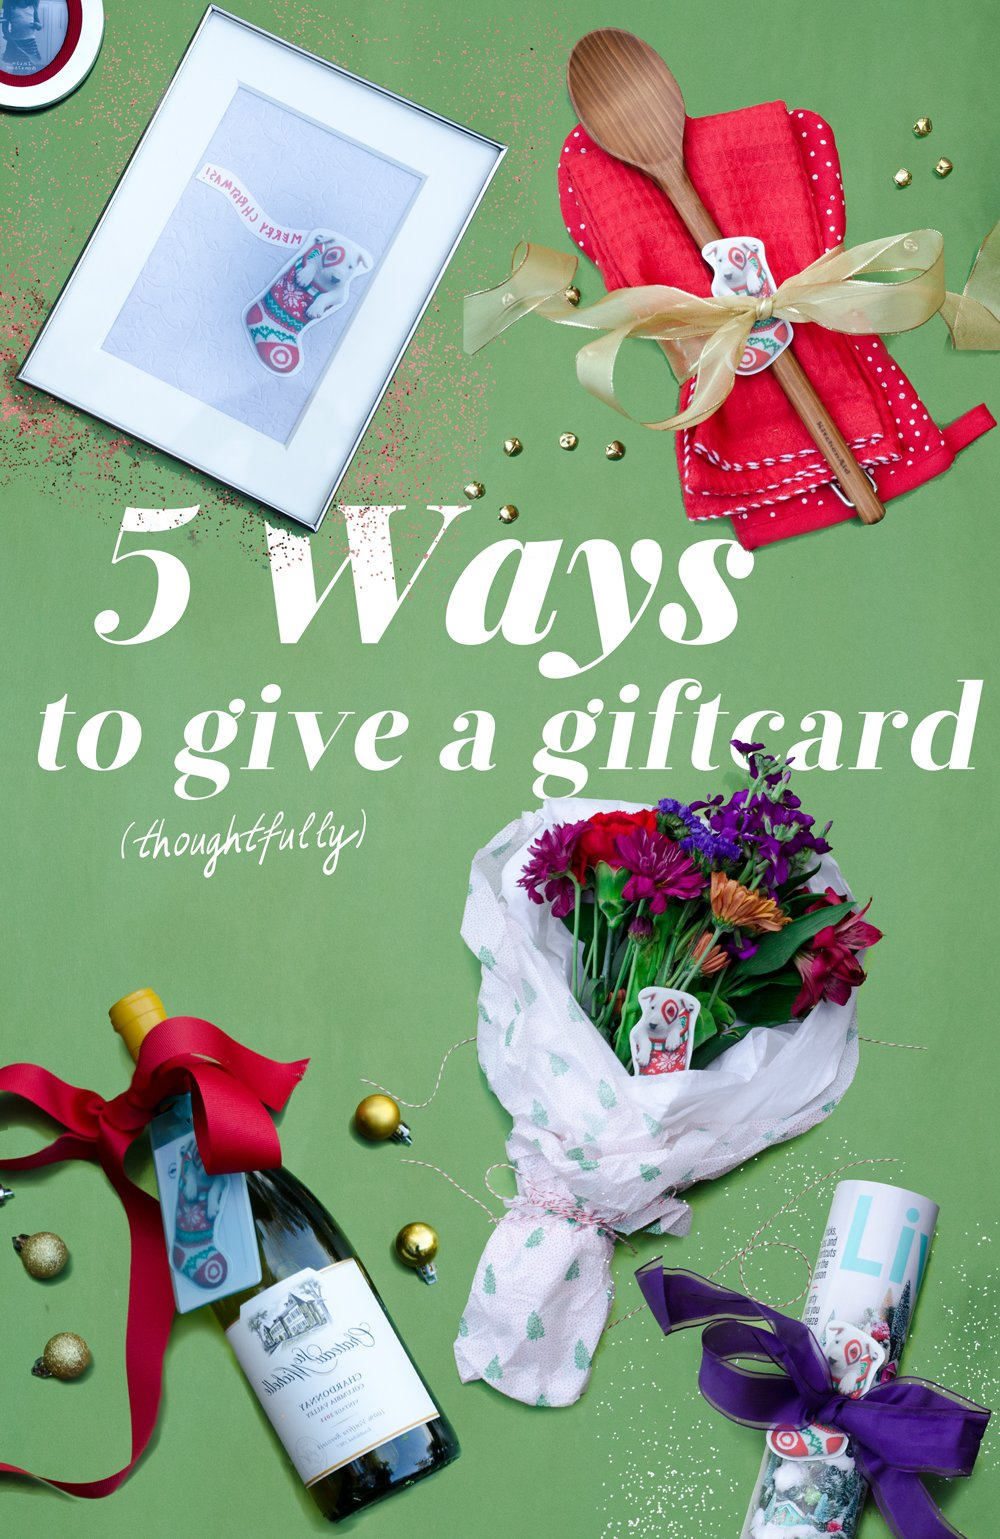 How to Give a Giftcard (Thoughtfully) | Thou Swell http://thouswell.co/